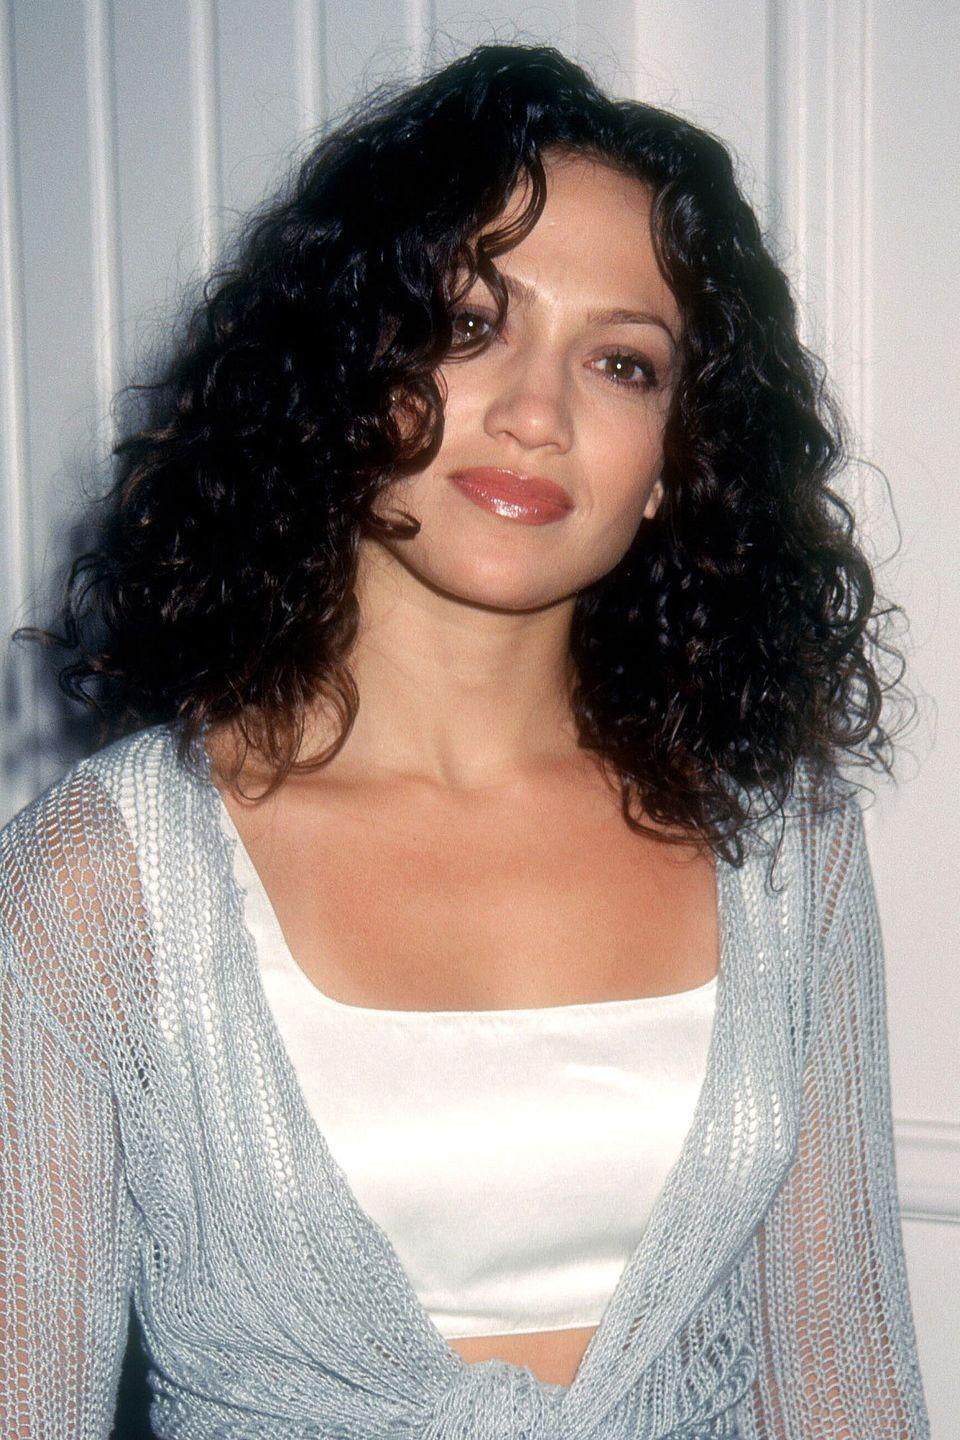 <p>Early on in her career, J.Lo hadn't started messing with foils yet, taking on Hollywood as a brunette bombshell.</p>